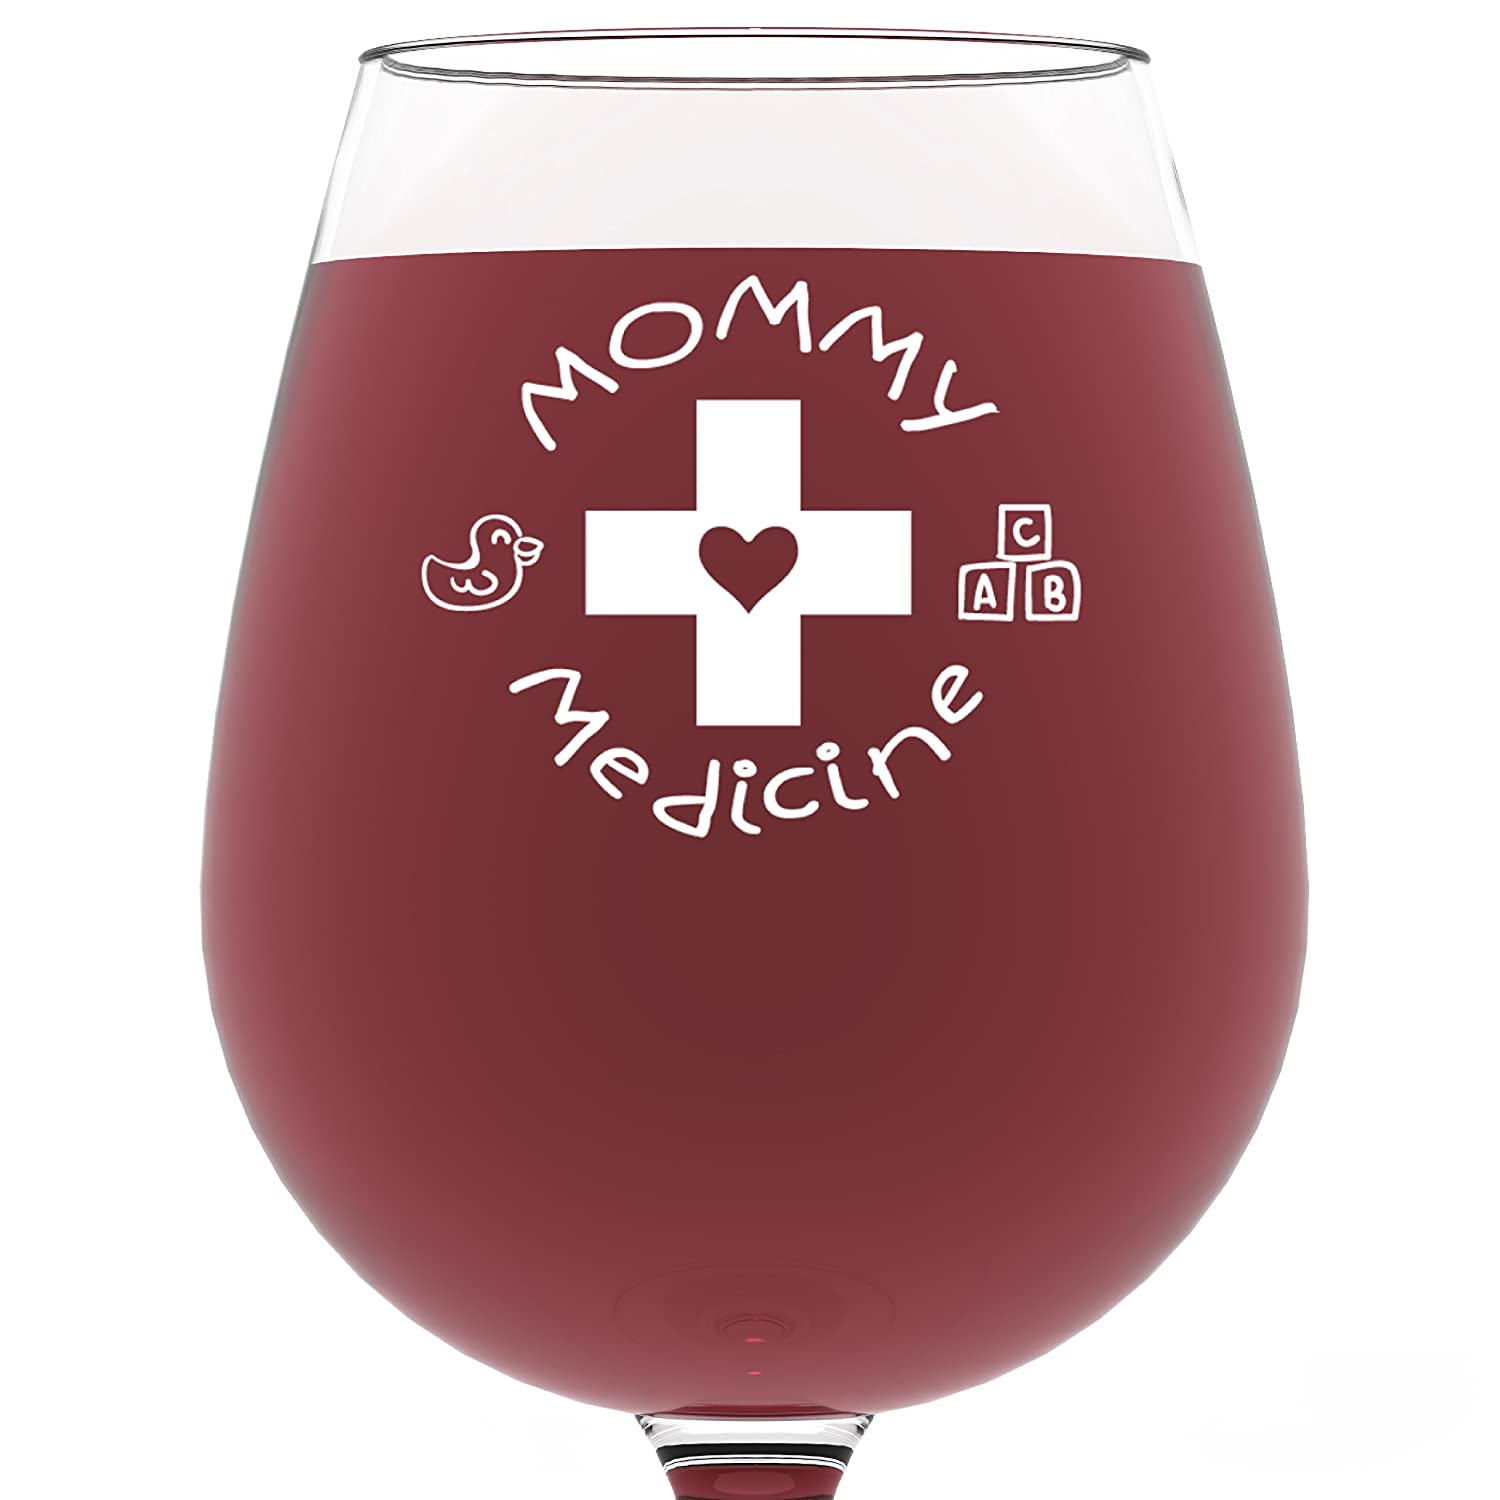 Mommy Medicine Funny Wine Glass 13 oz – Best Mother's Day Gifts For Mom – Unique Birthday Gift For Her from Son or Daughter – Cool Humorous Present Idea For Women, Wife, Girlfriend, Sister, In-law